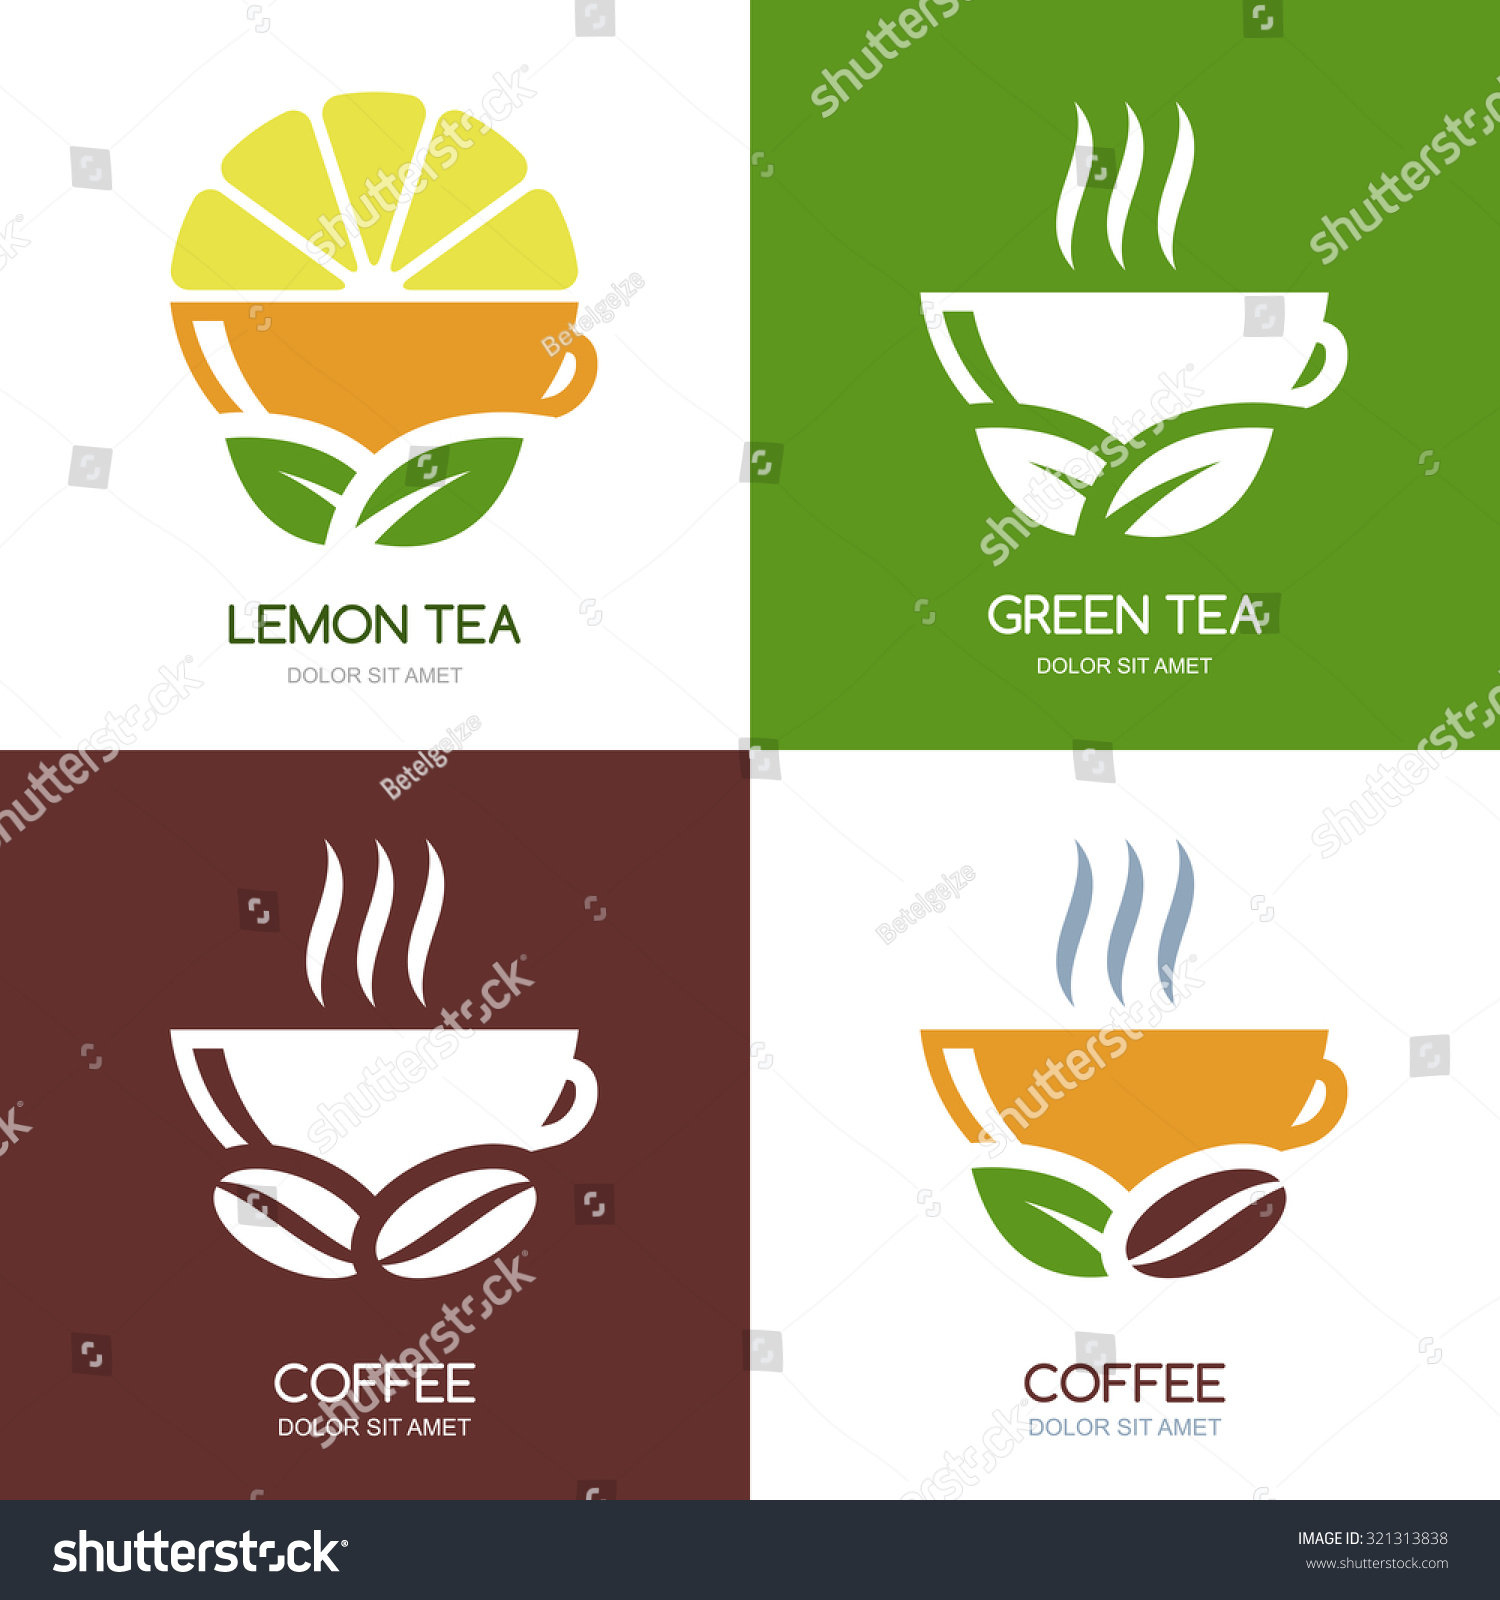 Coffee organic tea - Set Of Vector Green Tea And Hot Coffee Flat Logo Icons Abstract Concept For Bar